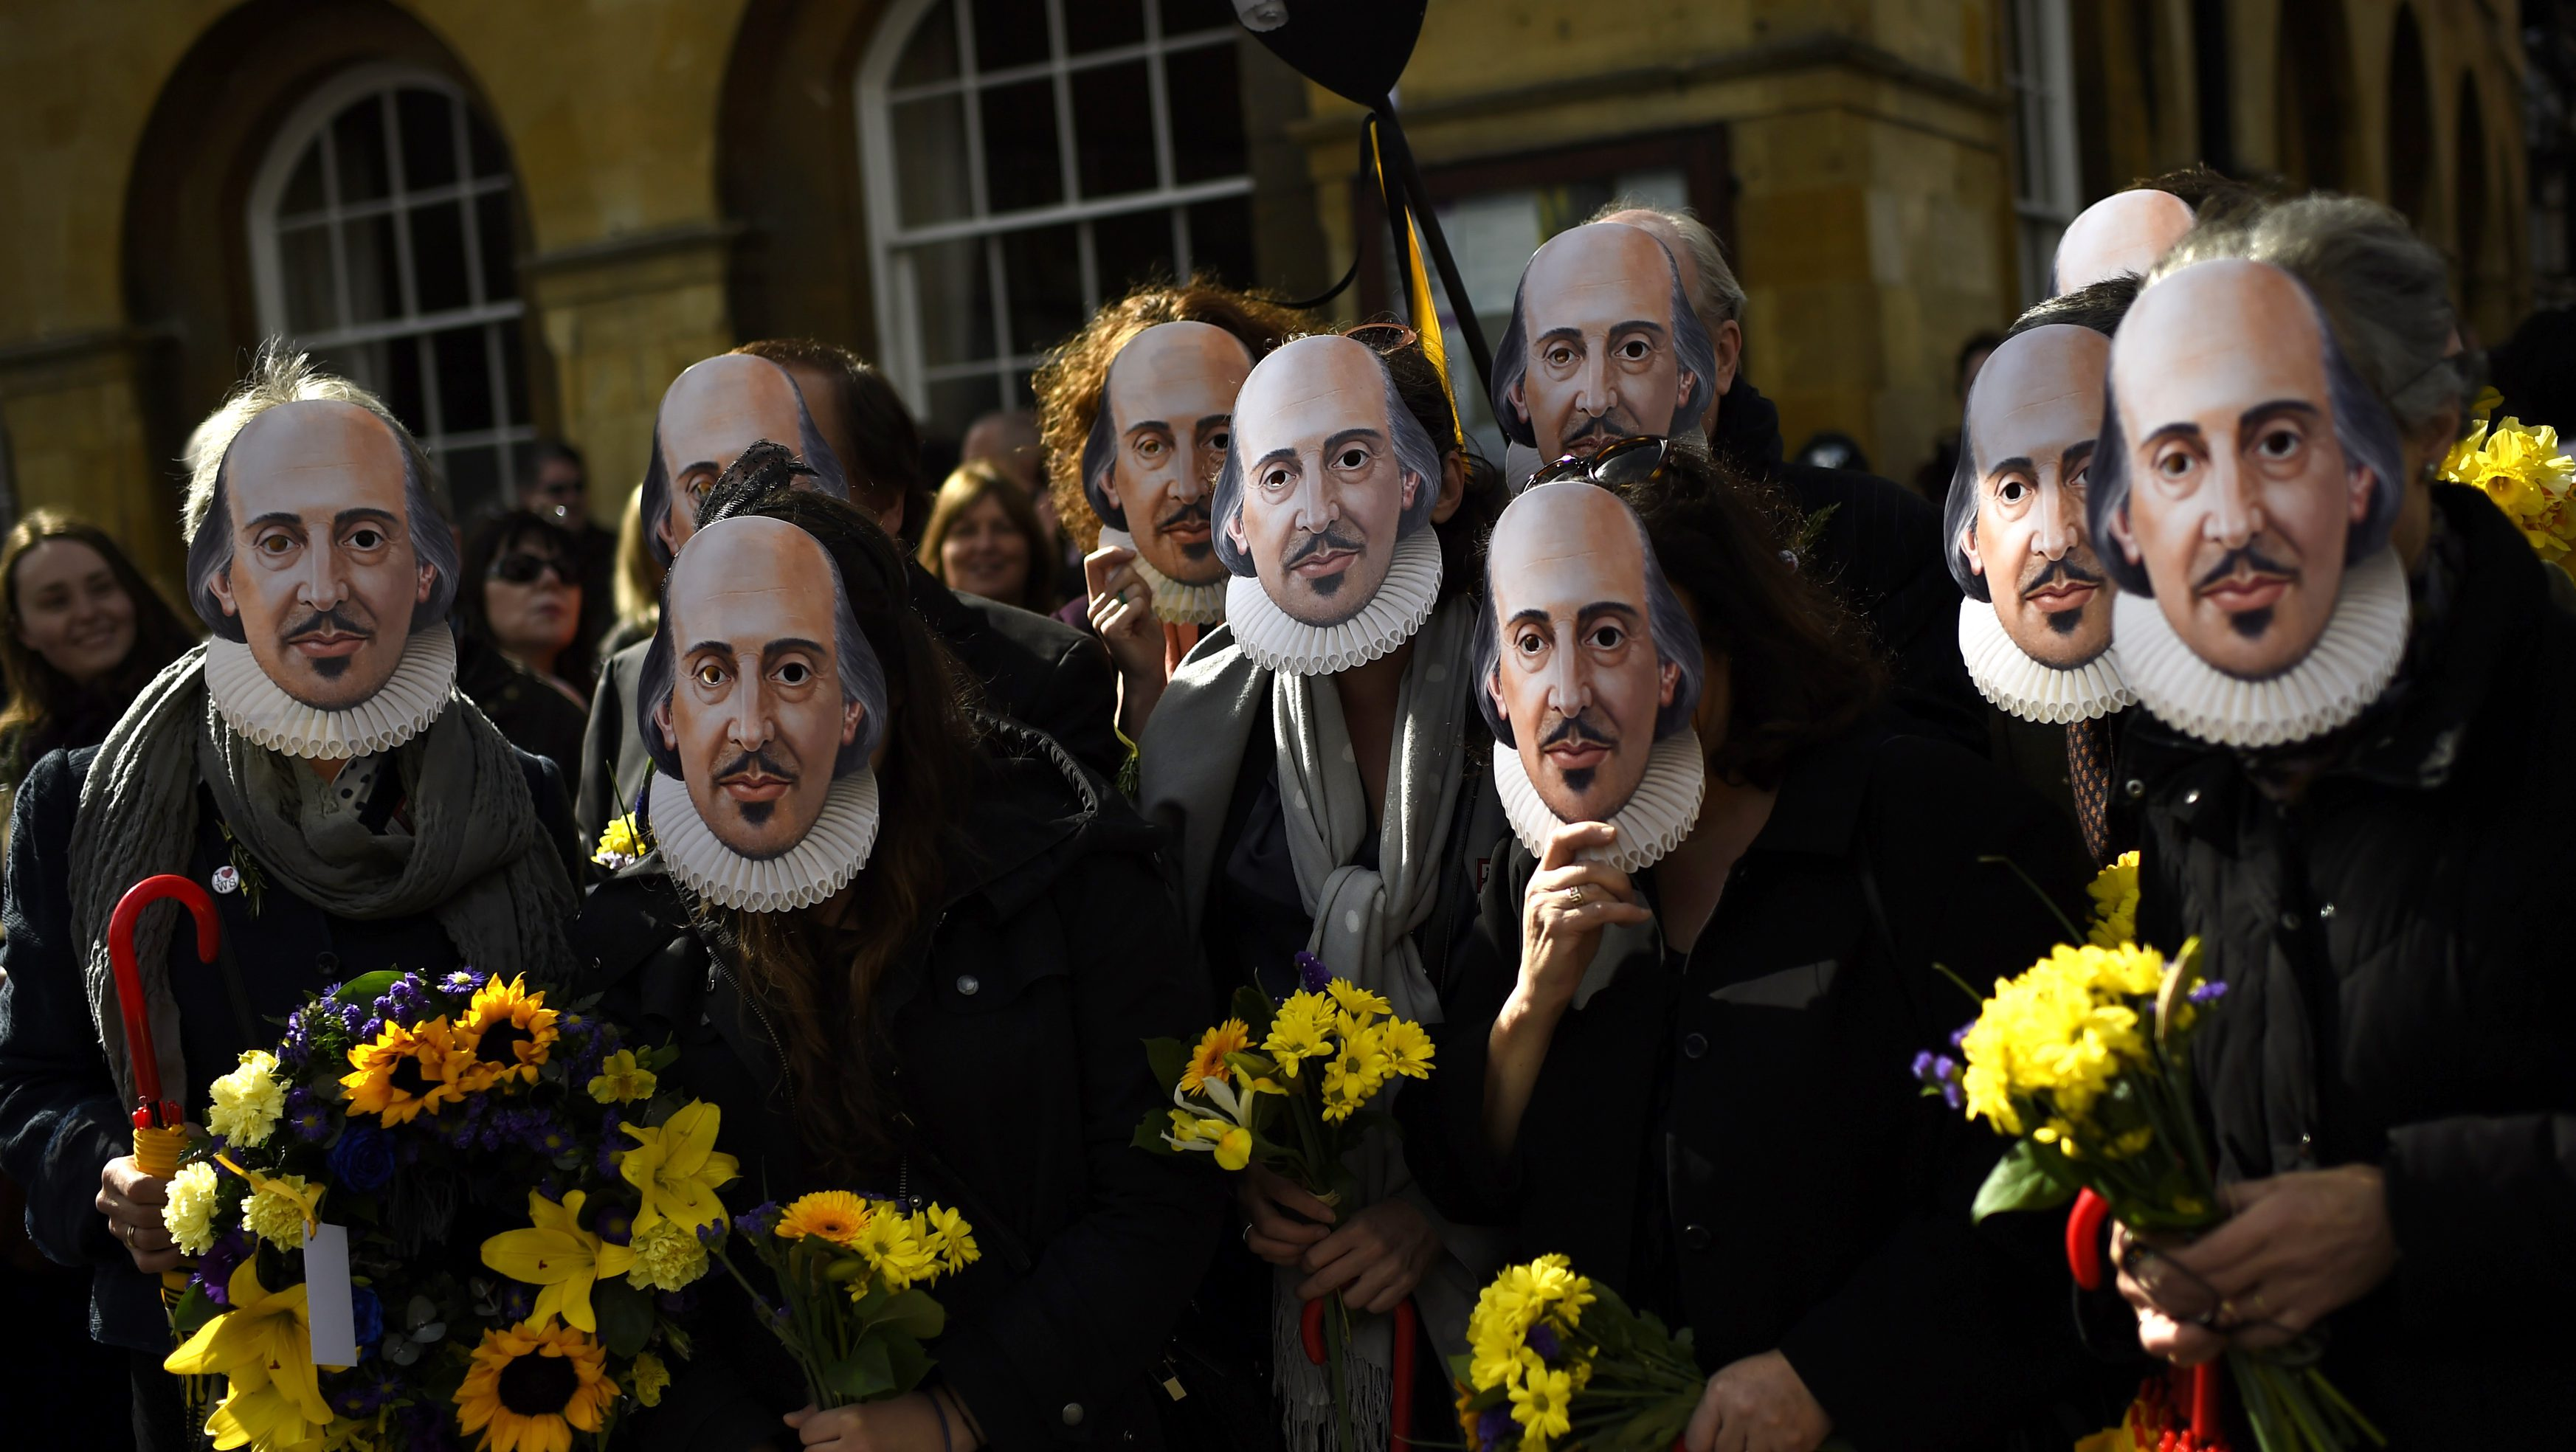 People hold up face masks with William Shakespeare's portrait during celebrations to mark the 400th anniversary of the playwright's death in the city of his birth, Stratford-Upon-Avon, Britain, April 23, 2016. REUTERS/Dylan Martinez - RTX2BAQO